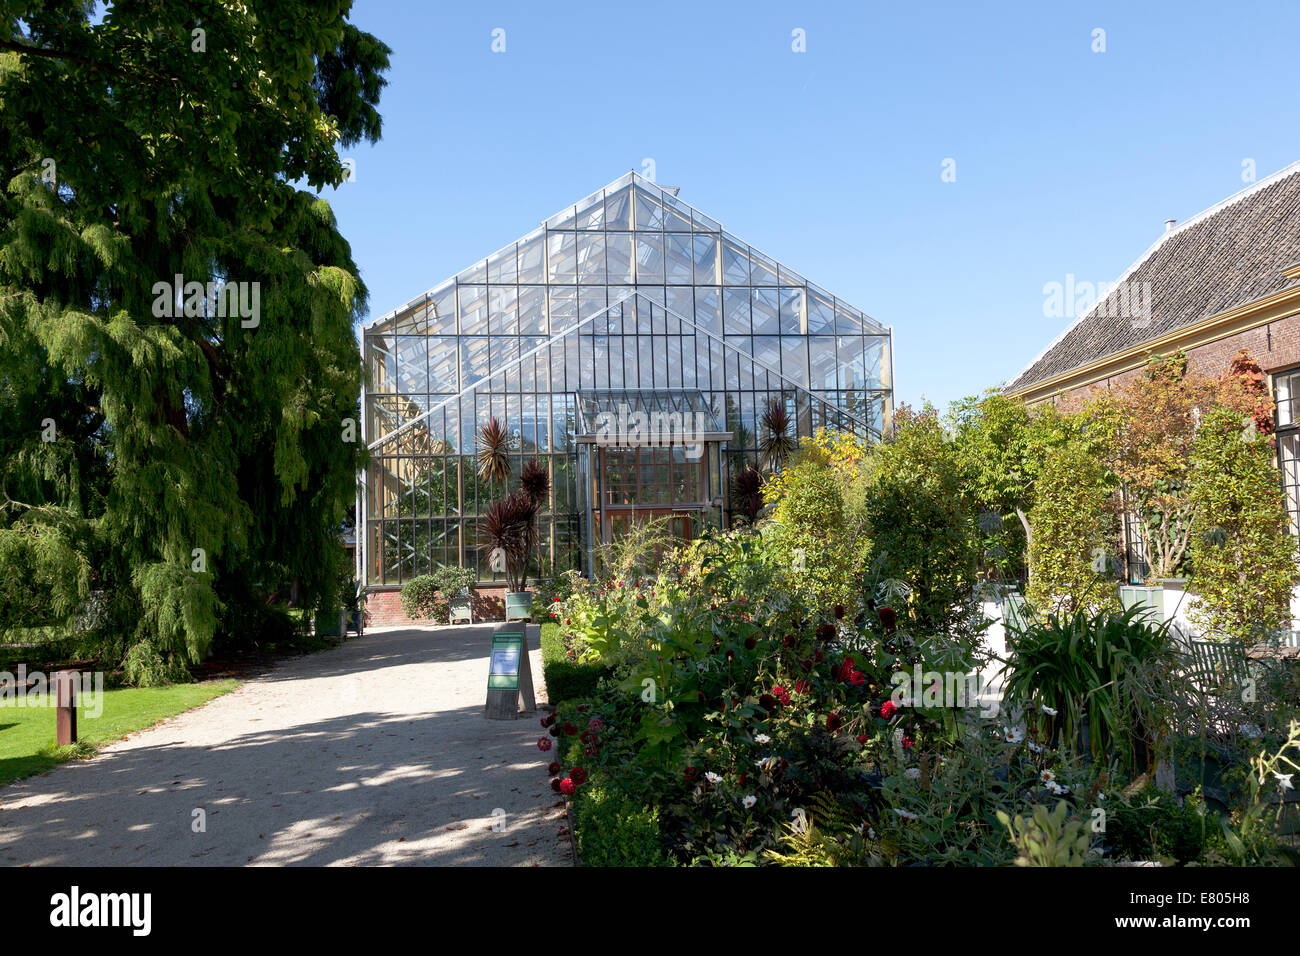 Tropical greenhouse in the Hortus Botanicus in Leiden, Holland - Stock Image